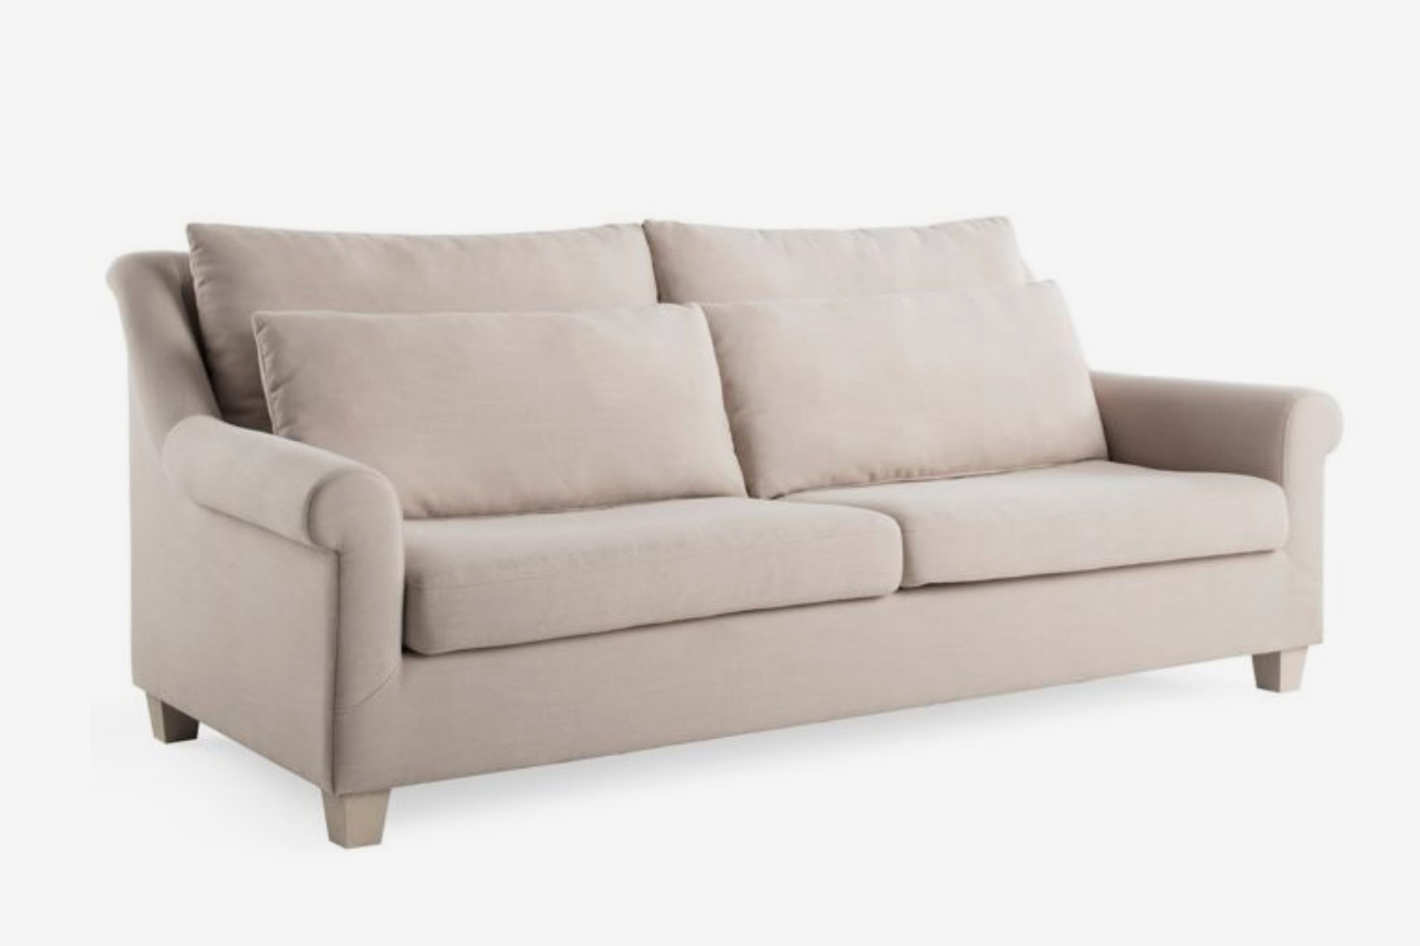 Sleeper Chairs 18 Best Sleeper Sofas Sofa Beds And Pullout Couches 2018